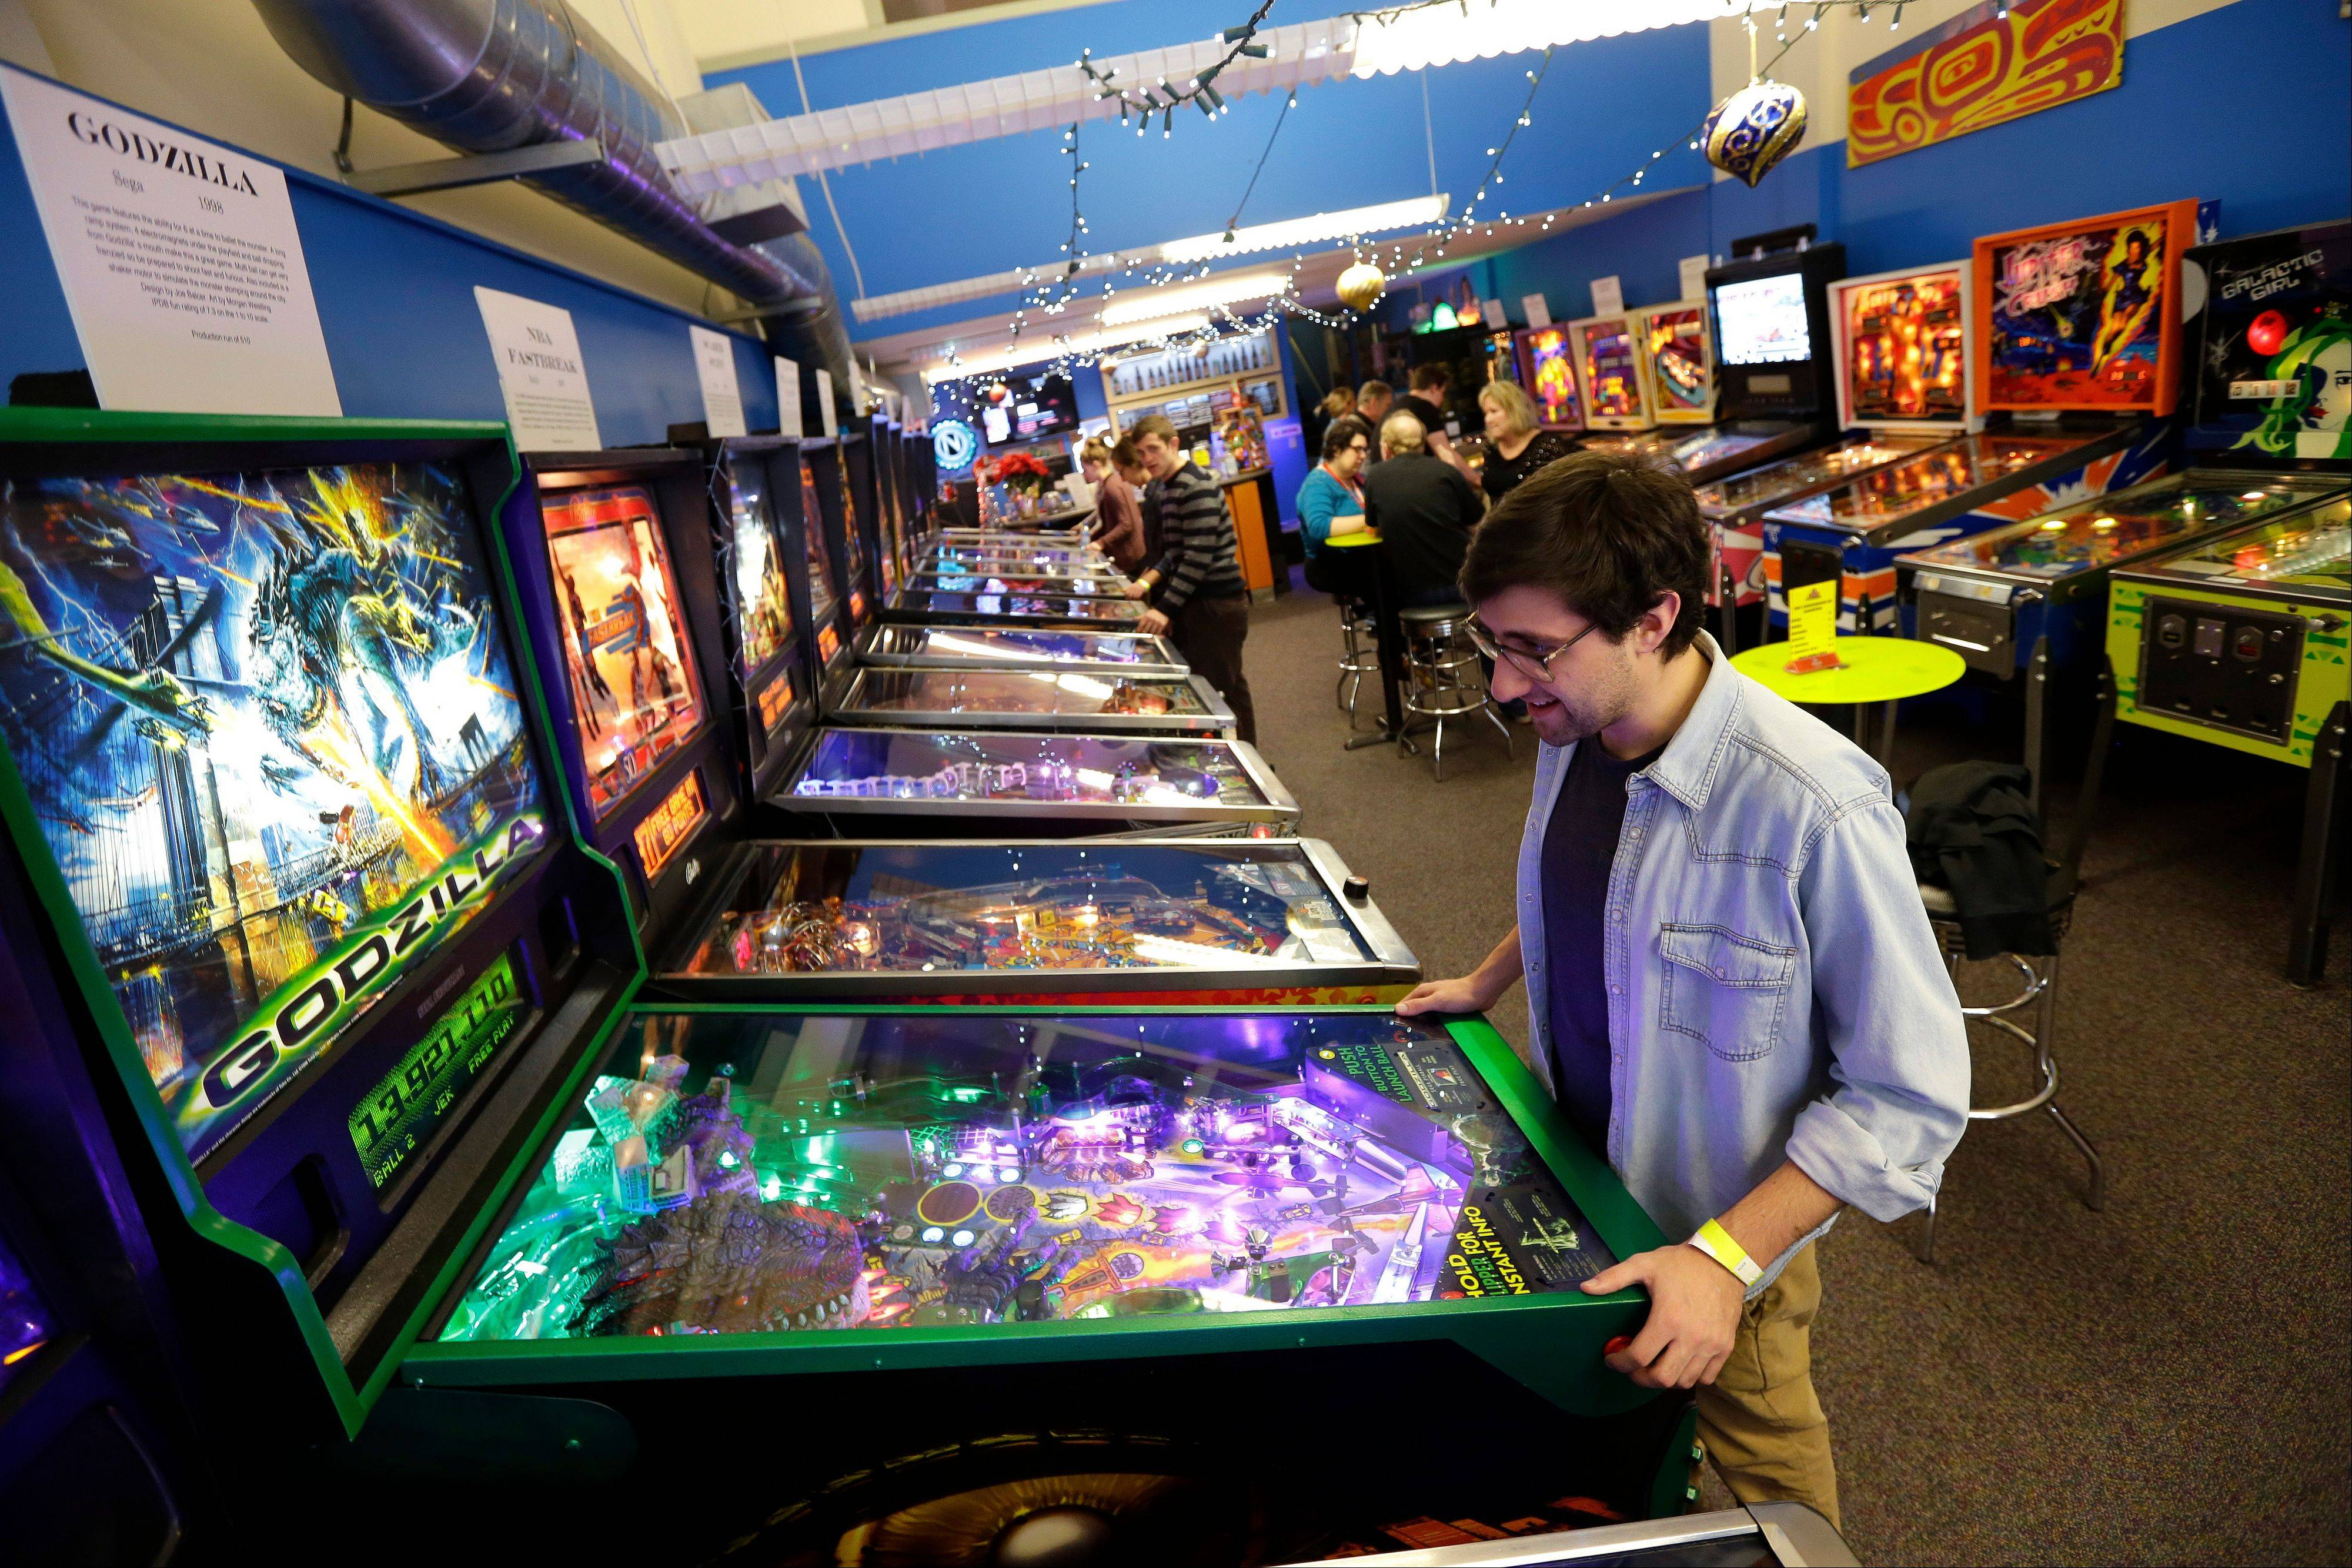 Josh Saitelbach plays pinball on an 1998 Godzilla machine as he visits the Seattle Pinball Museum in Seattle. The museum allows visitors who pay the admission fee to play unlimited rounds on the machines, which range from the 1960s to modern-day games.